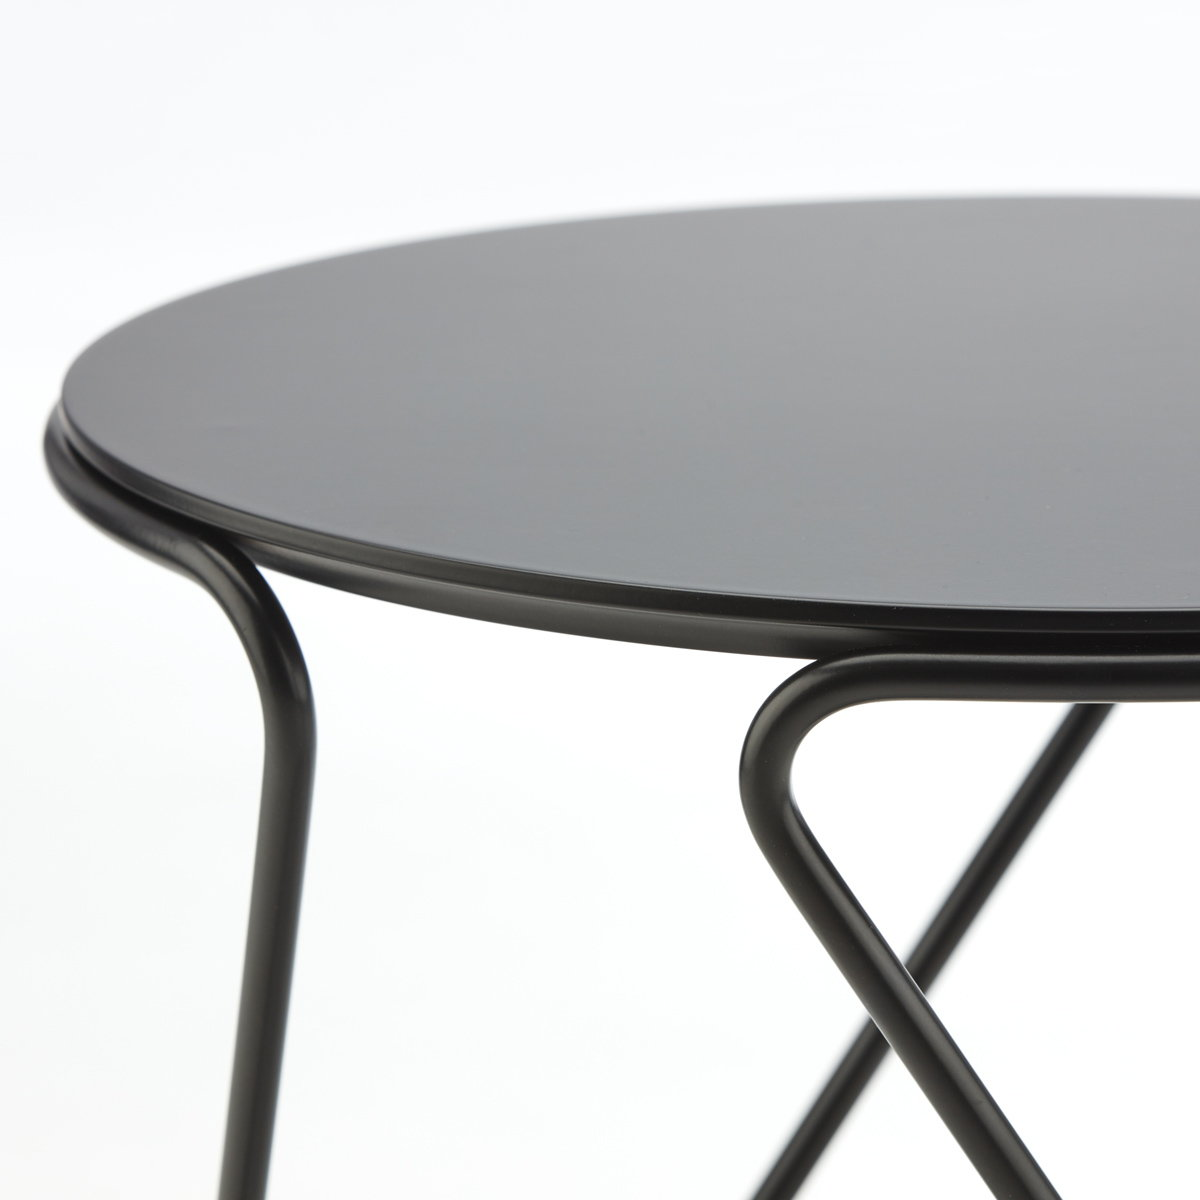 Thonet Side Table S 18 by Uli Budde